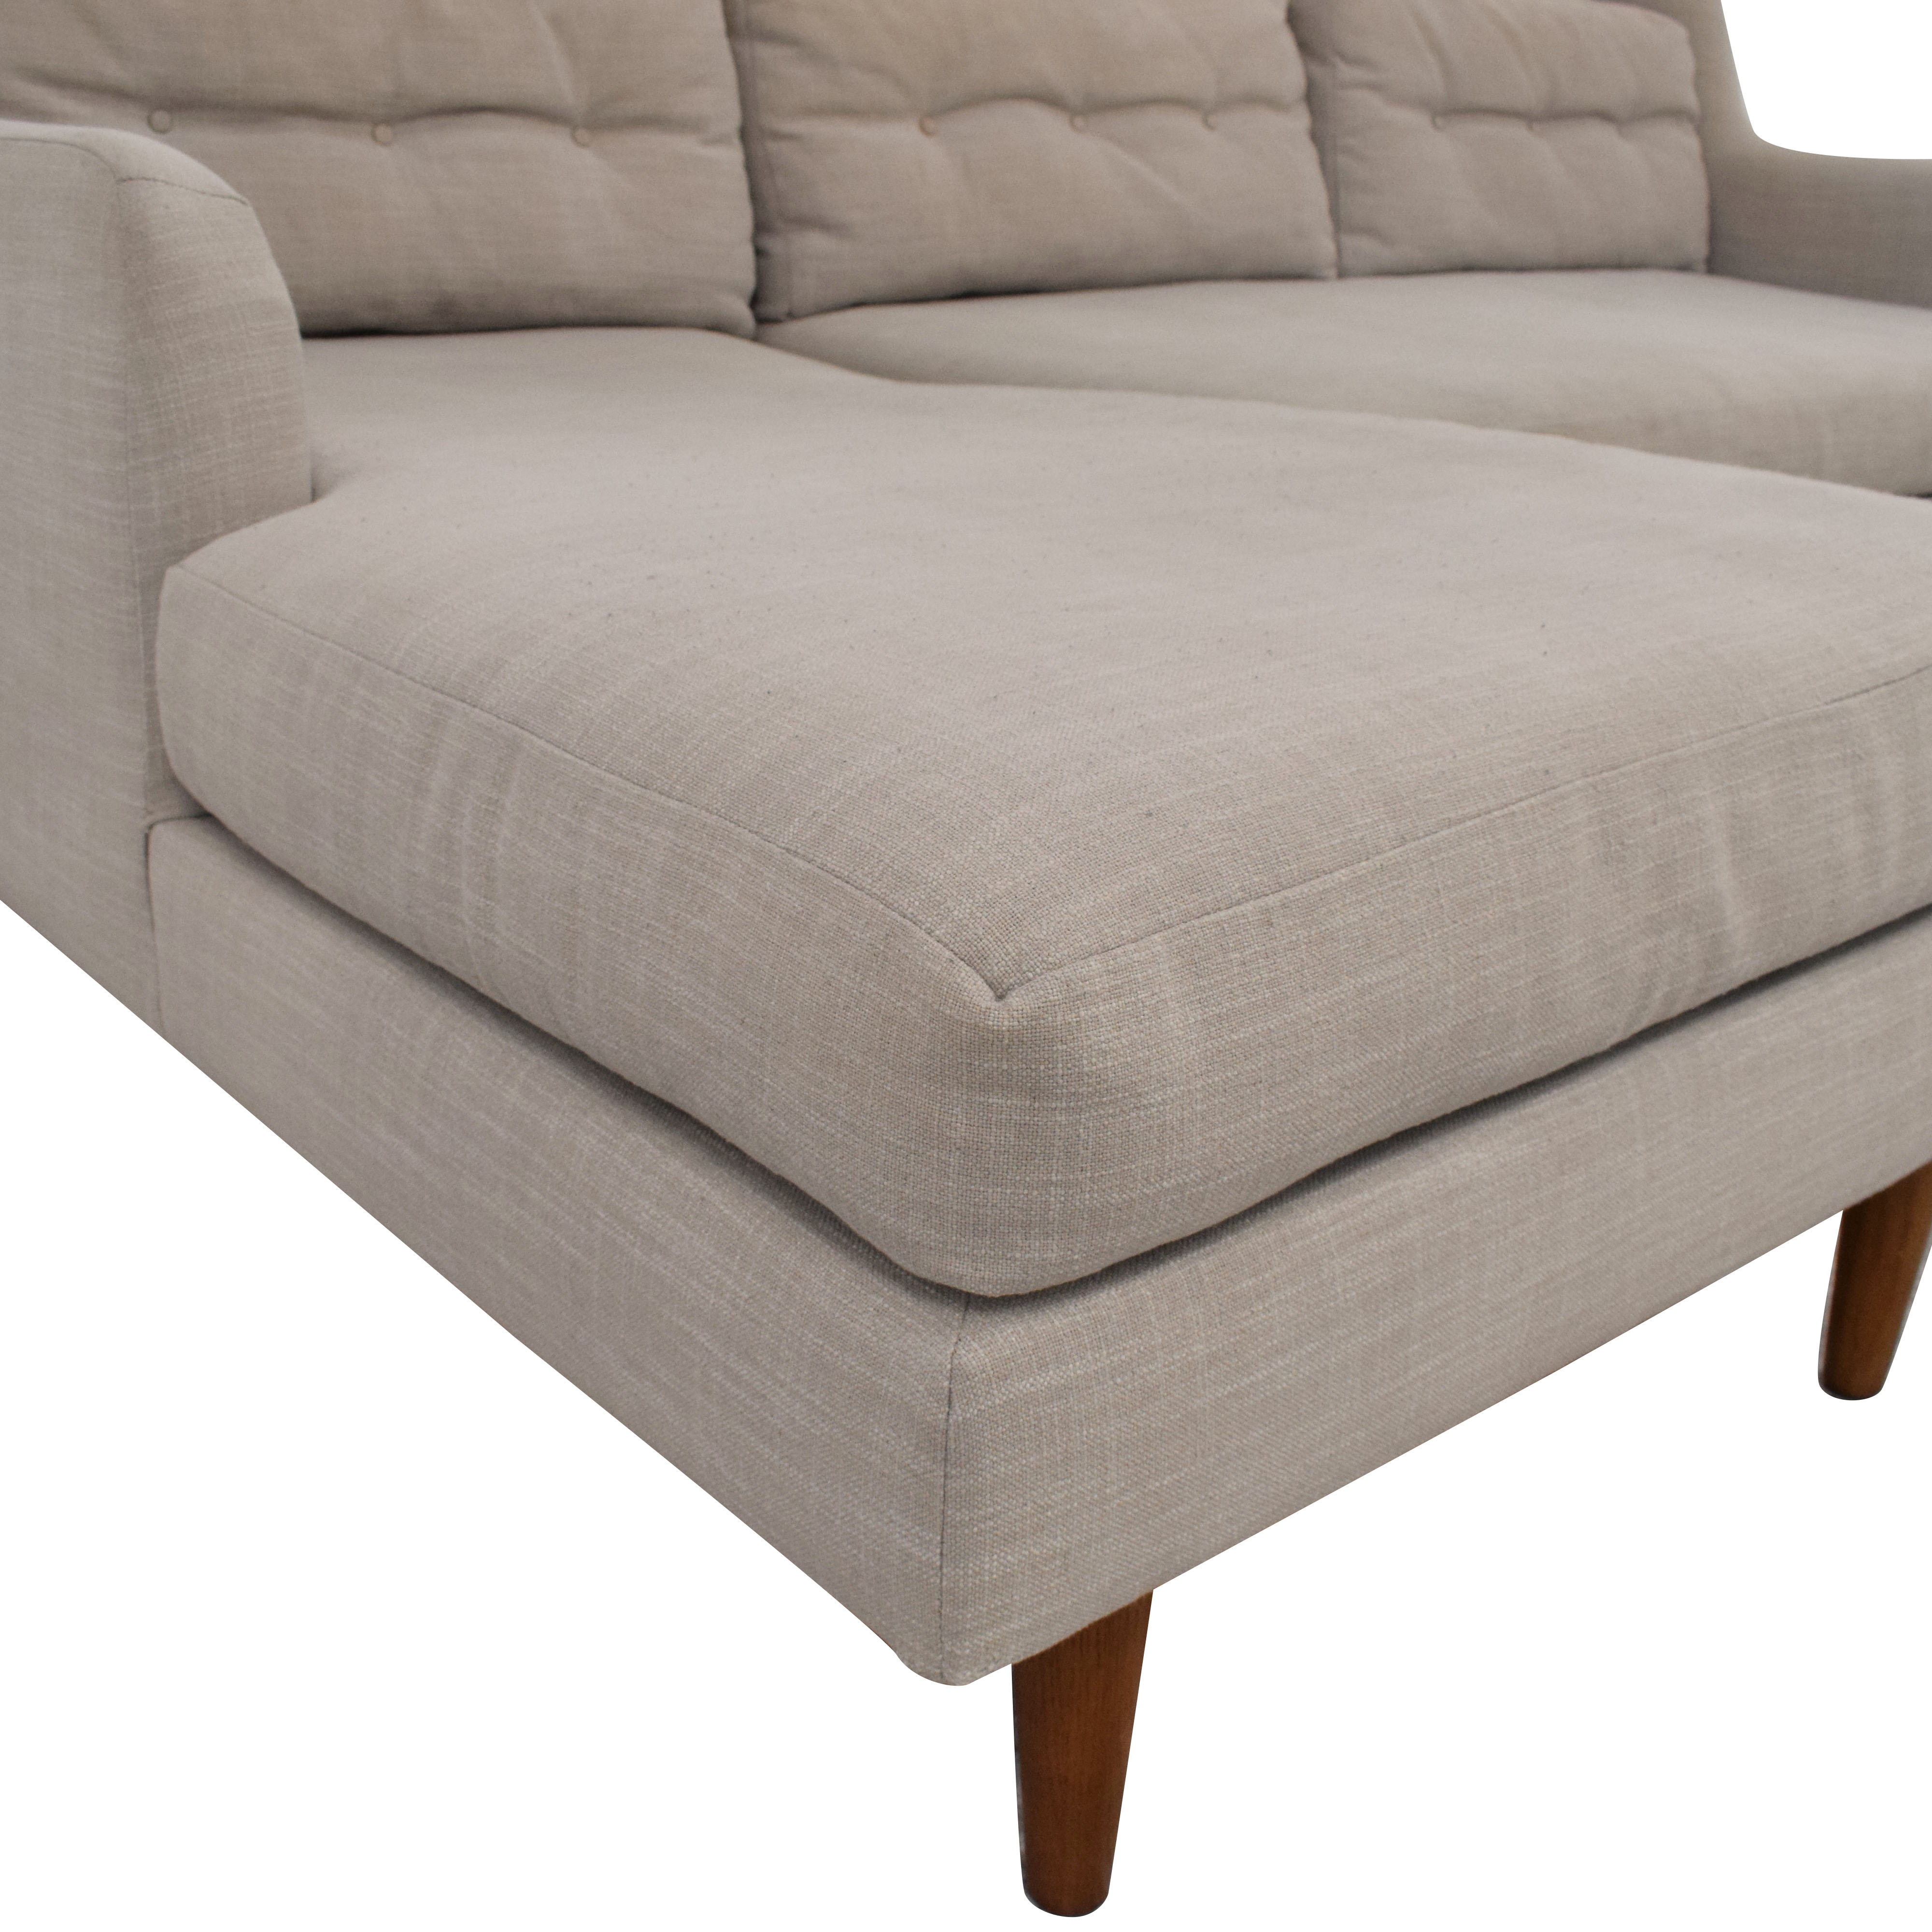 West Elm West Elm Crosby Mid-Century 2-Piece Chaise Sectional second hand